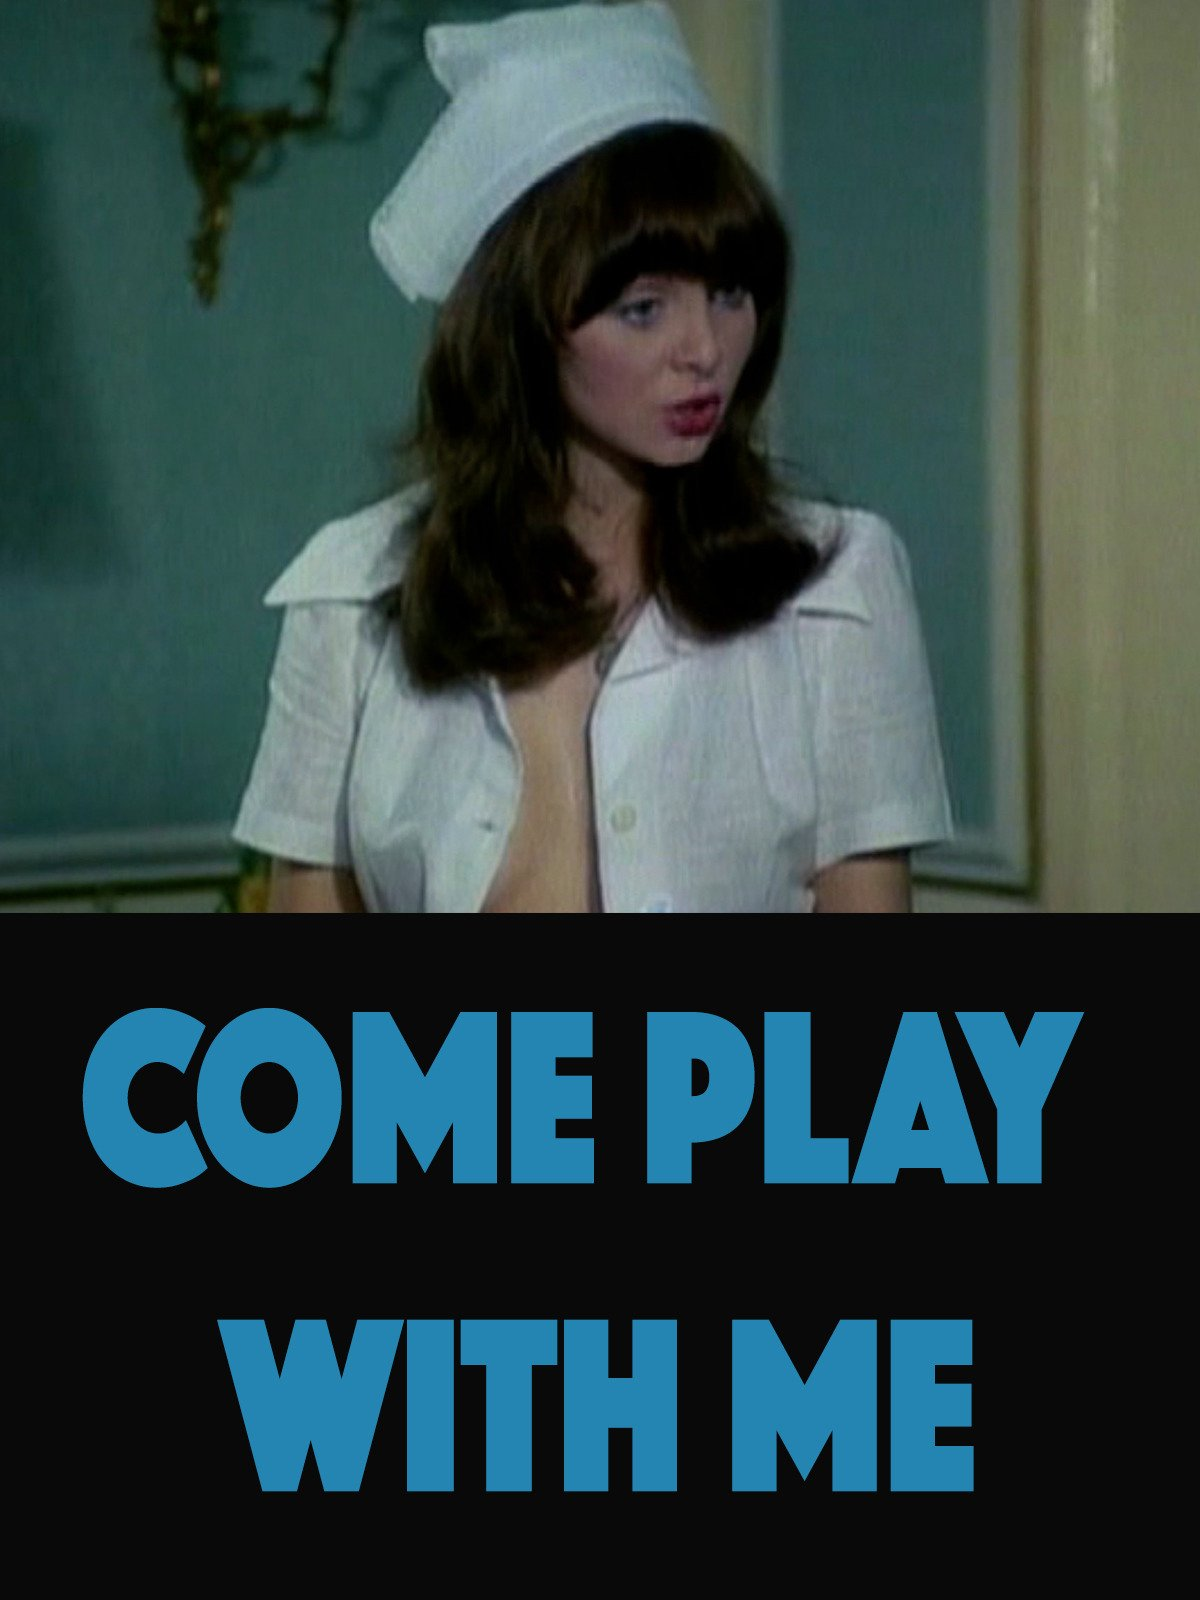 Watch Come Play With Me Prime Video